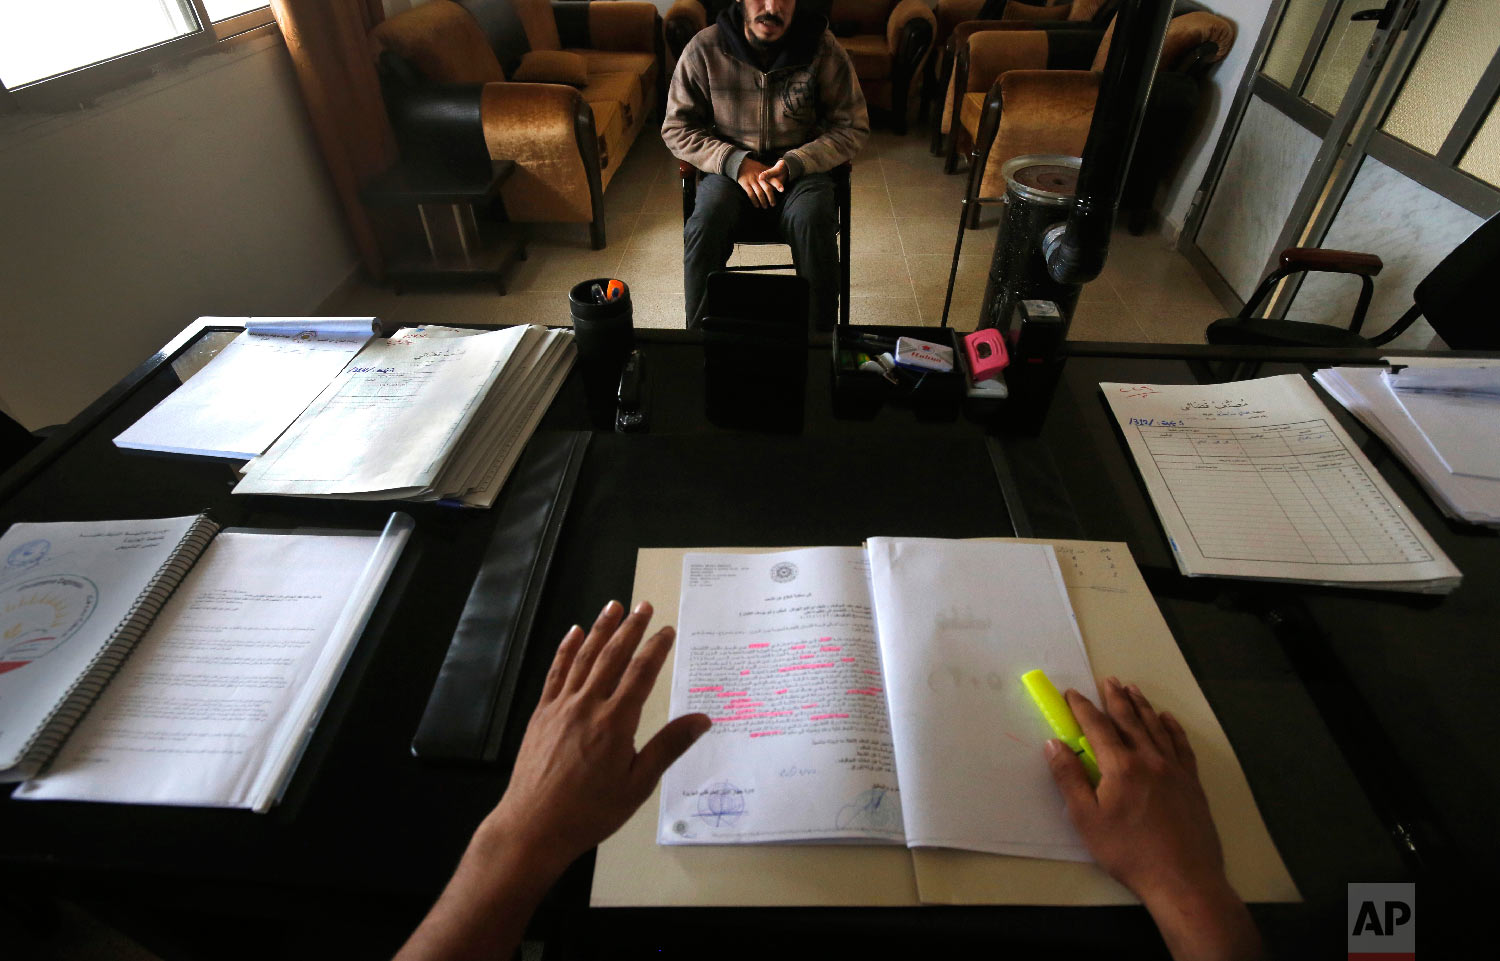 A Syrian 19-year-old former member of the Islamic State group, who declined to be identified, sits opposite a panel of judges in the courtroom of a Kurdish-run terrorism court, in Qamishli, north Syria on April 3, 2018. (AP Photo/Hussein Malla)